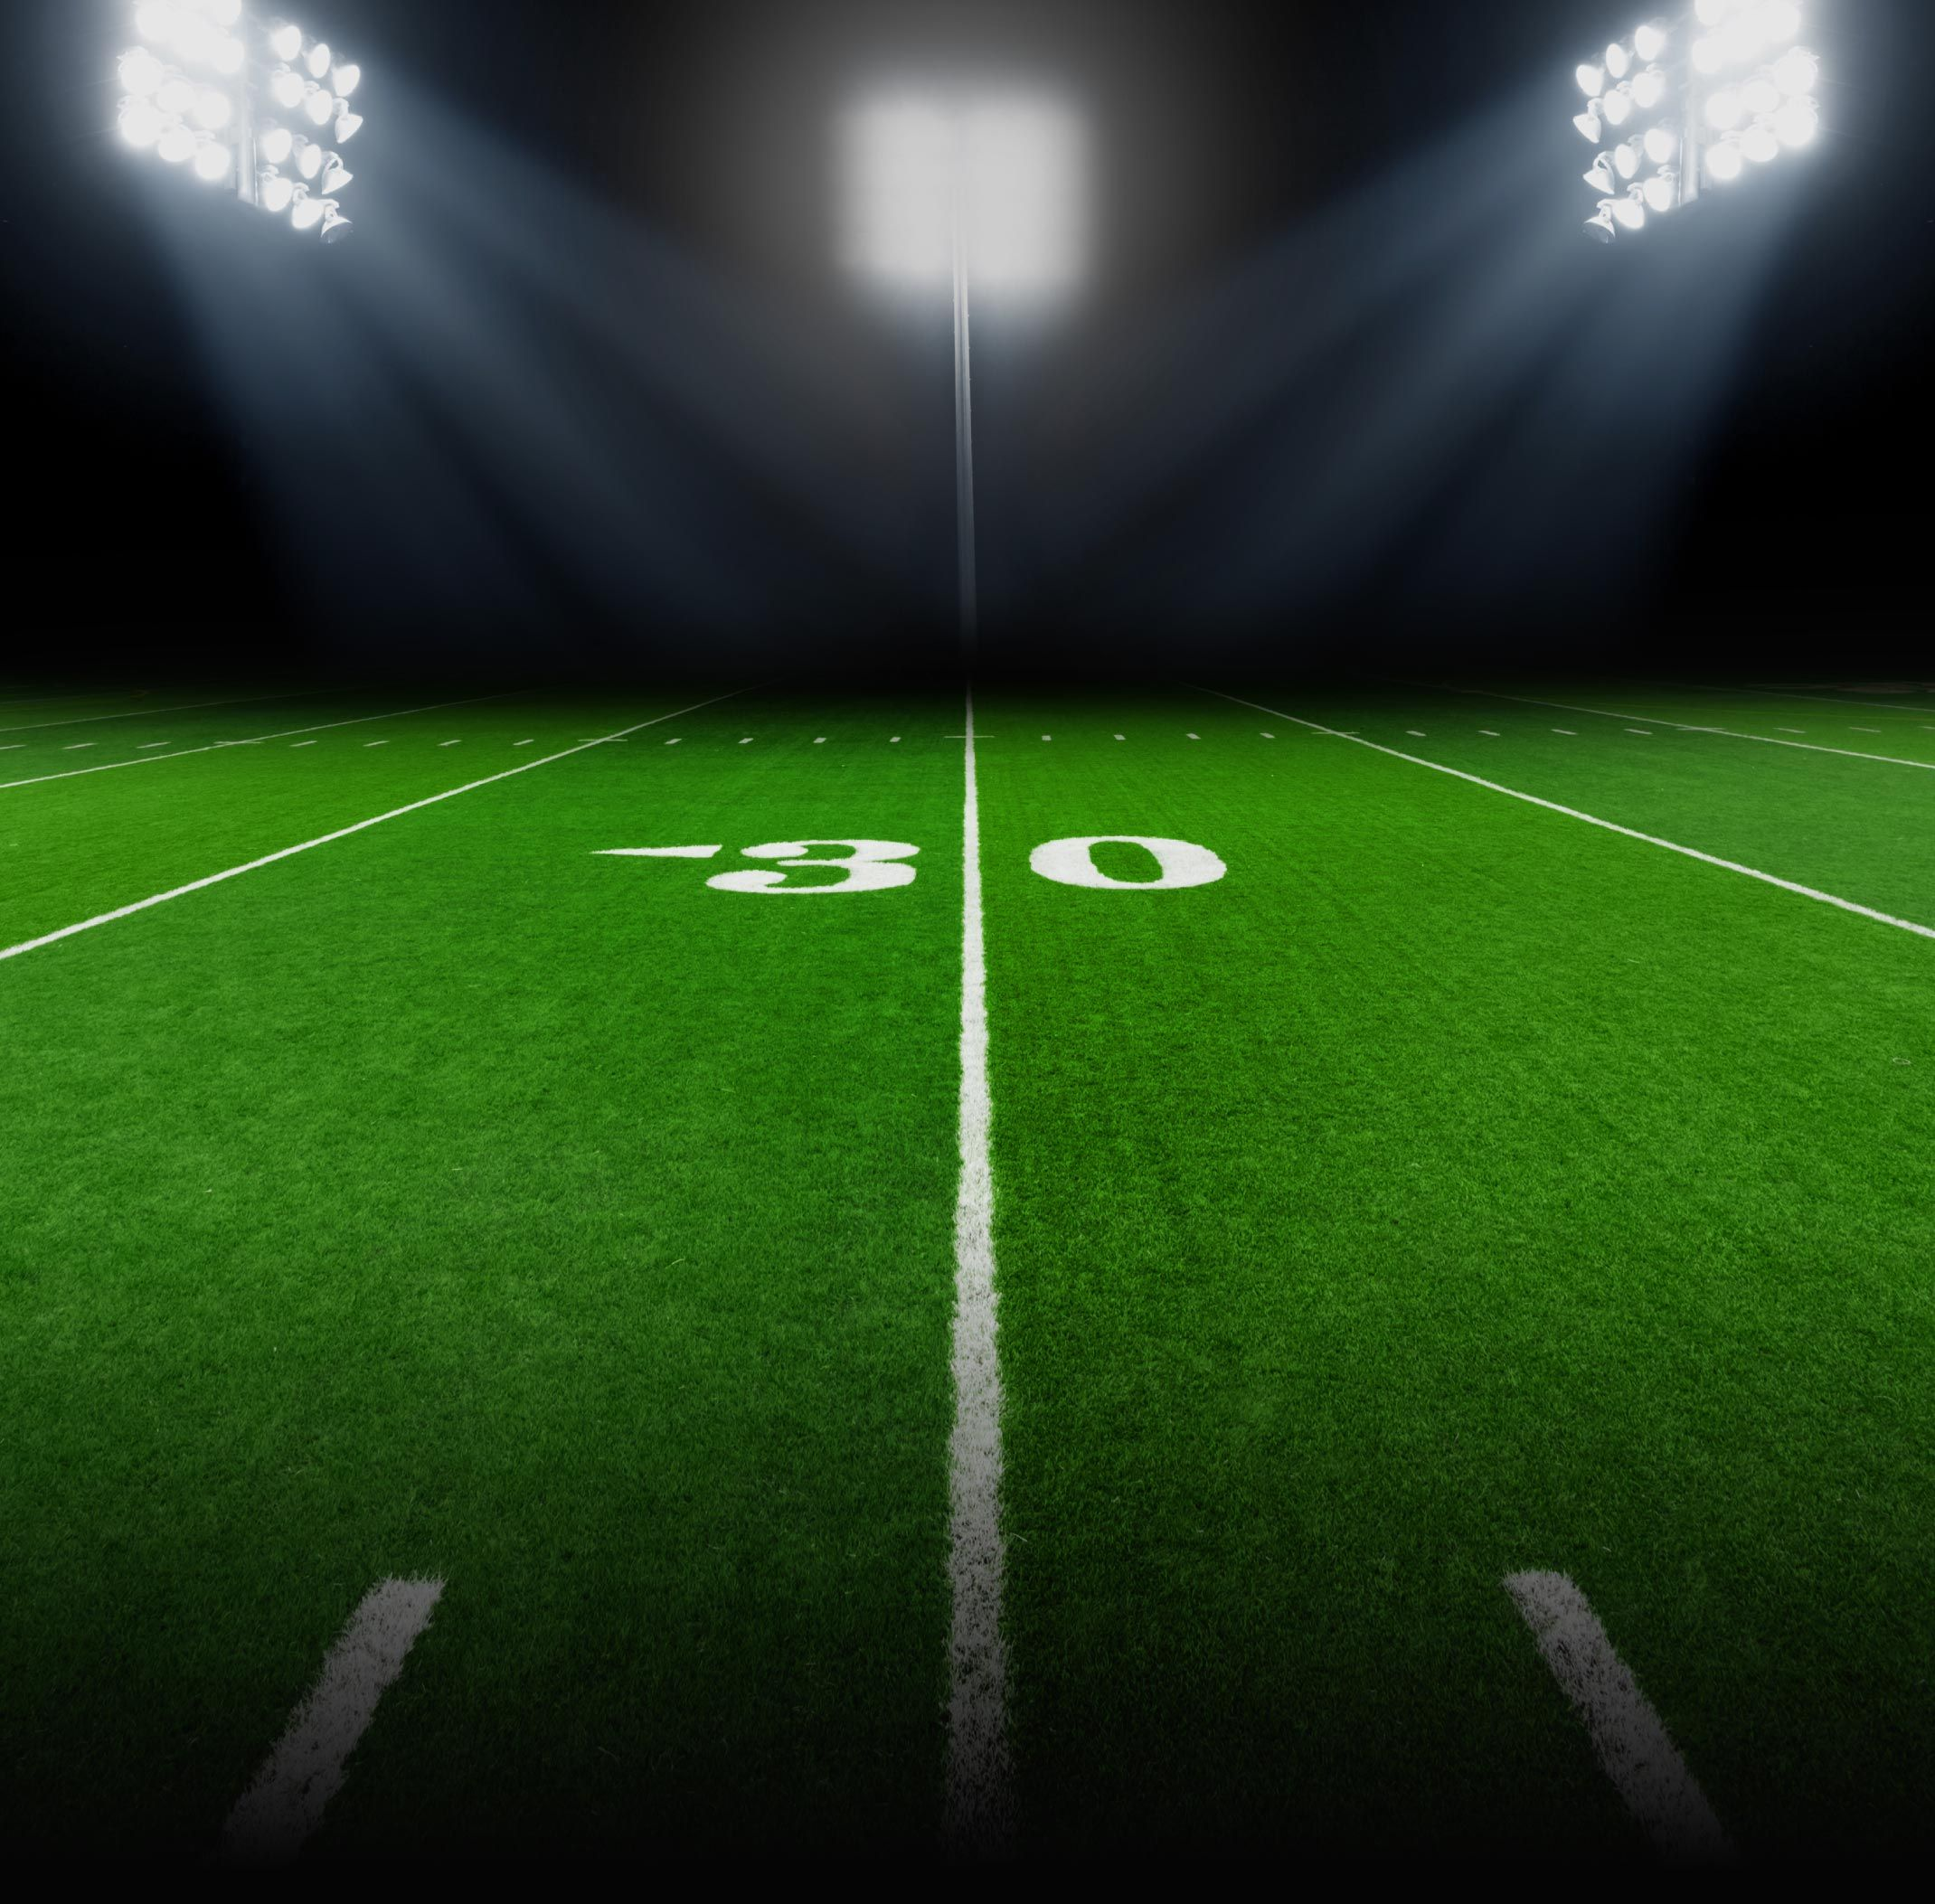 background football field with